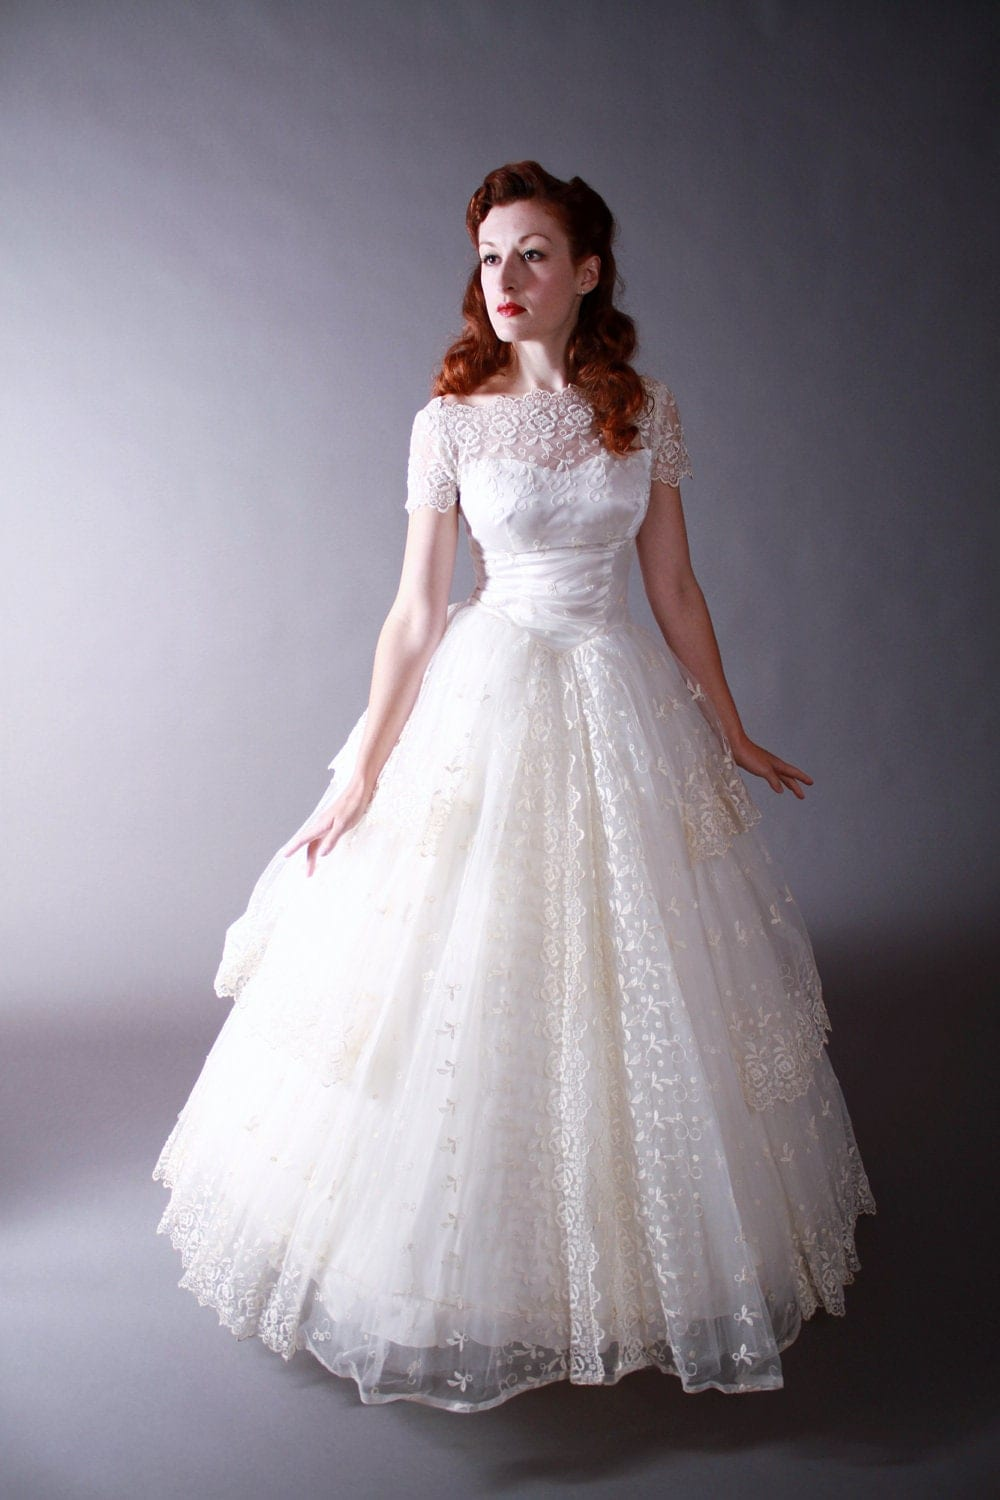 Vintage 1950s Wedding Gown Amazing Tiered Pale Ivory